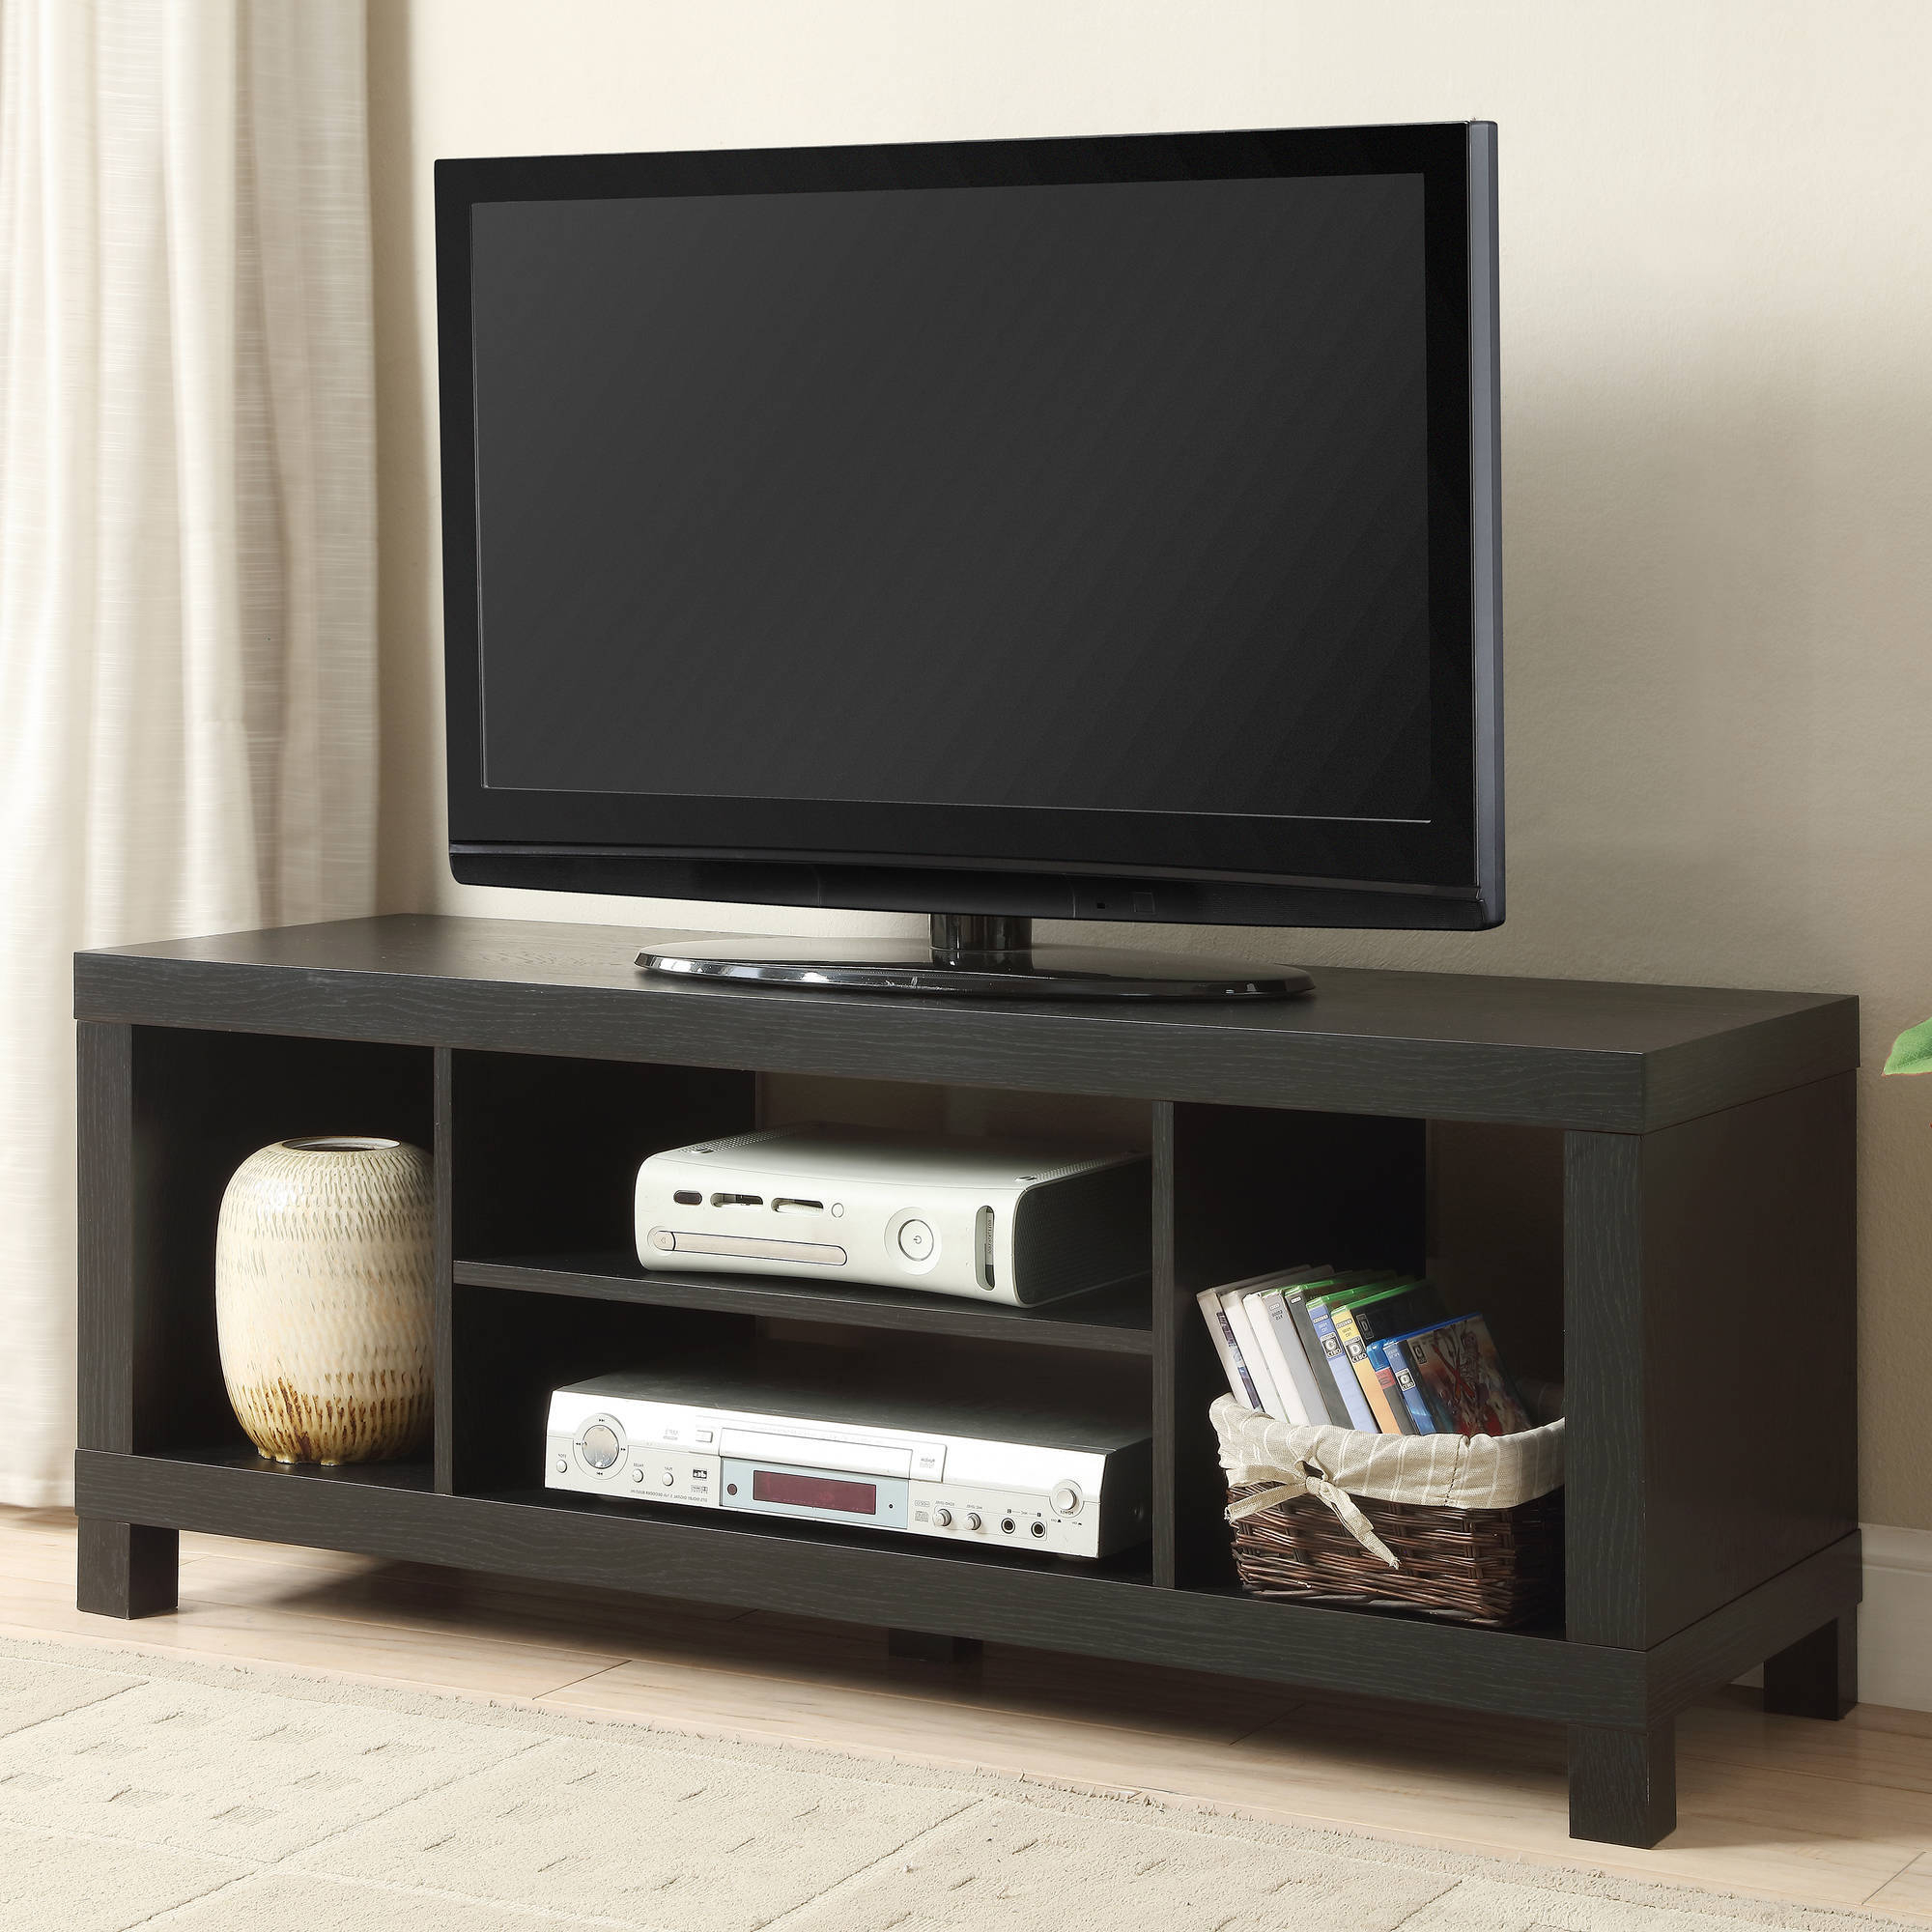 Wood Tv Stands With Glass Top Regarding Most Recently Released 42 Inch Tv Stand Entertainment Center Home Theater Media Storage (View 18 of 20)